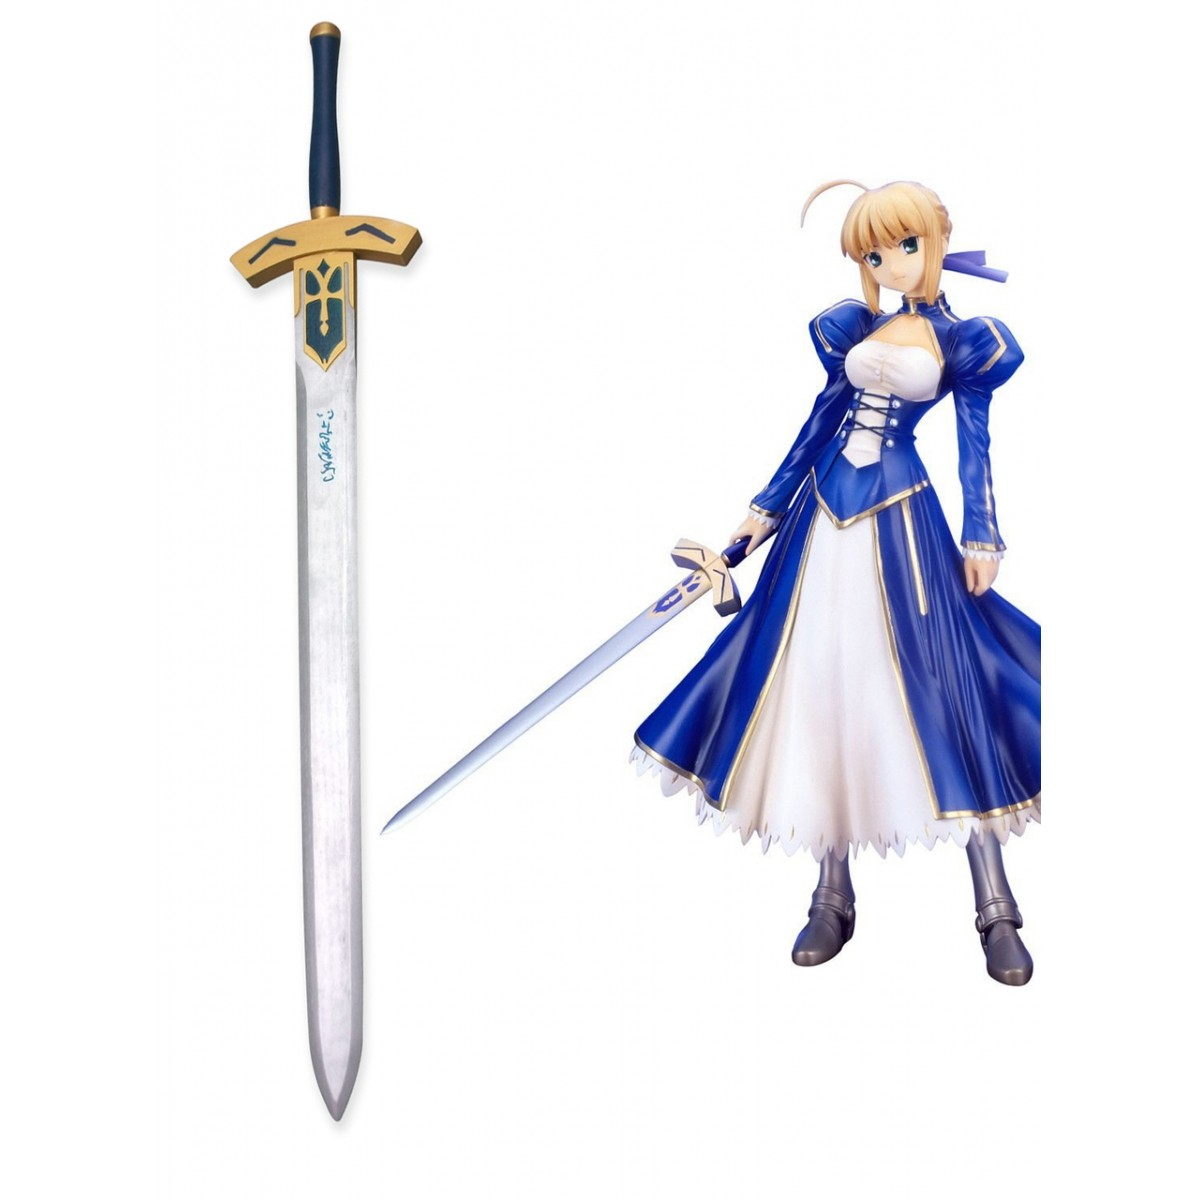 Espada Saber Excalibur: Fate Stay Night